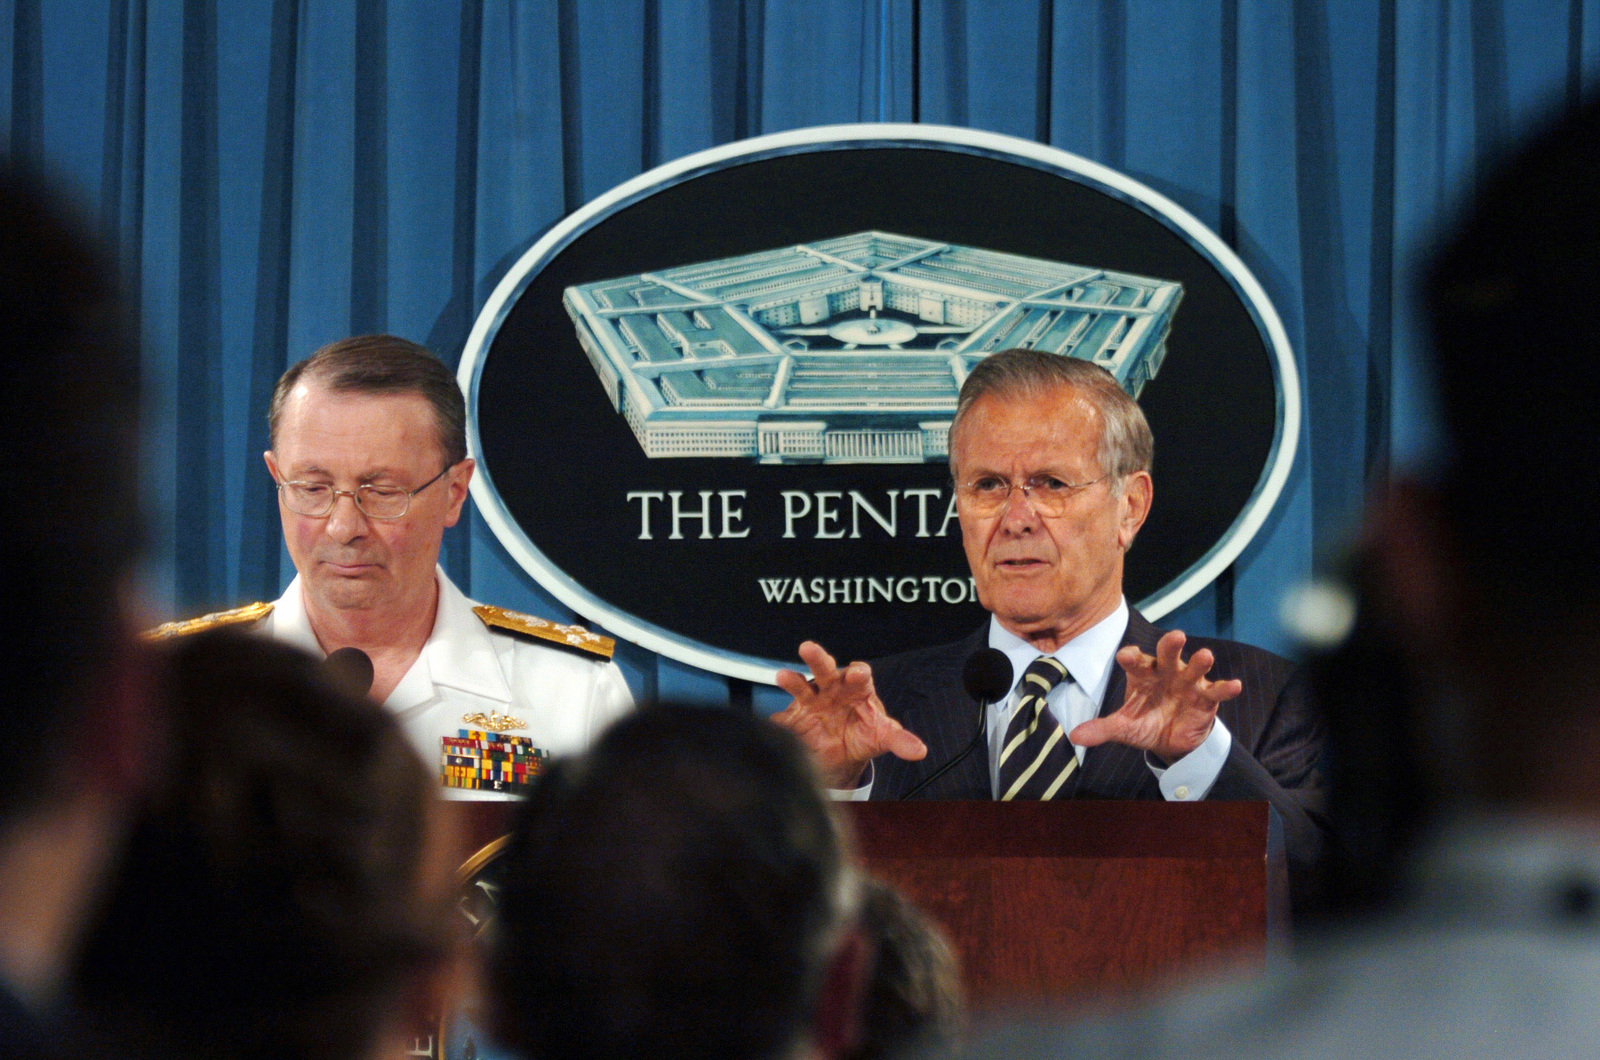 U.S. Navy Adm. Edmund Giambastiani (left), Vice-Chairman of the Joint Chiefs of STAFF, listens as The Honorable Donald H. Rumsfeld, U.S. Secretary of Defense,  answer questions from members of the media in the Pentagon press room in Washington, District of Columbia. (DoD photo by STAFF SGT. Myles Cullen) (Released)